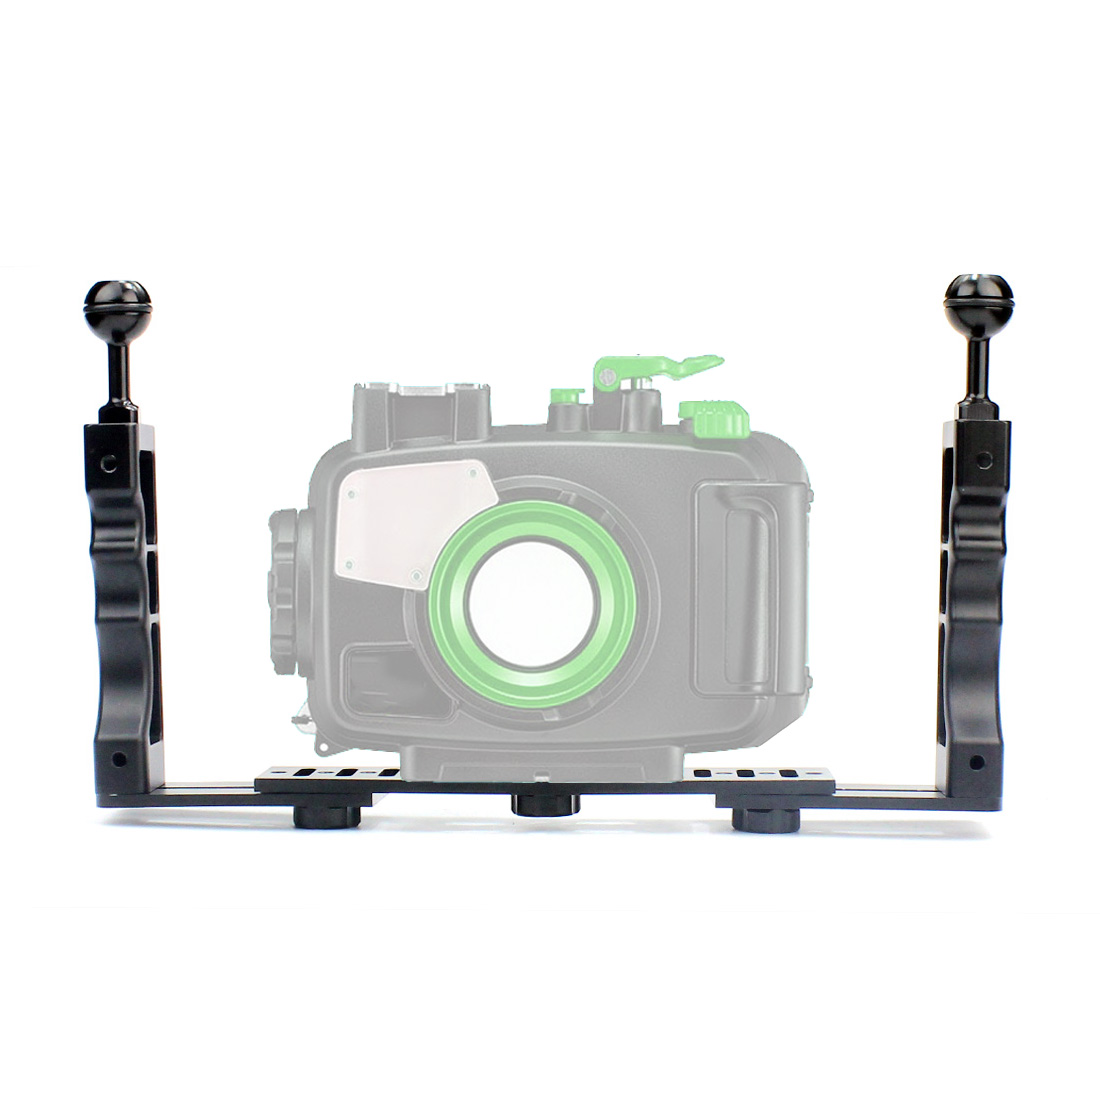 Galleria fotografica Aluminum Alloy Underwater Tray Housings Arm for Gopro Action Camera Holder Double Grip Dive